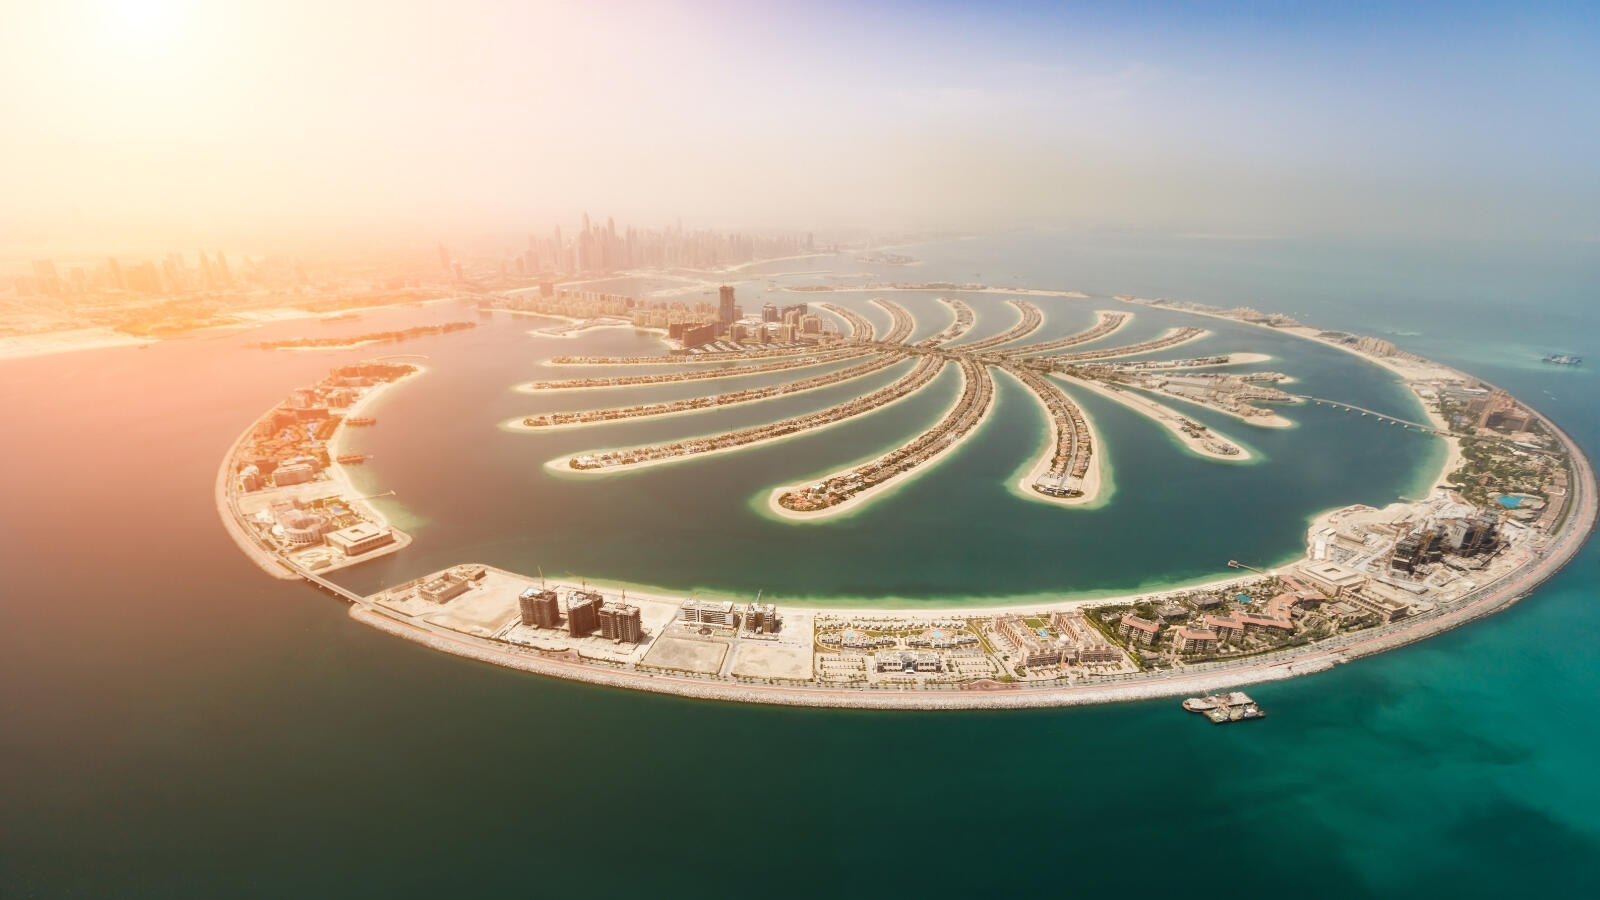 Things keep in mind when visiting Dubai